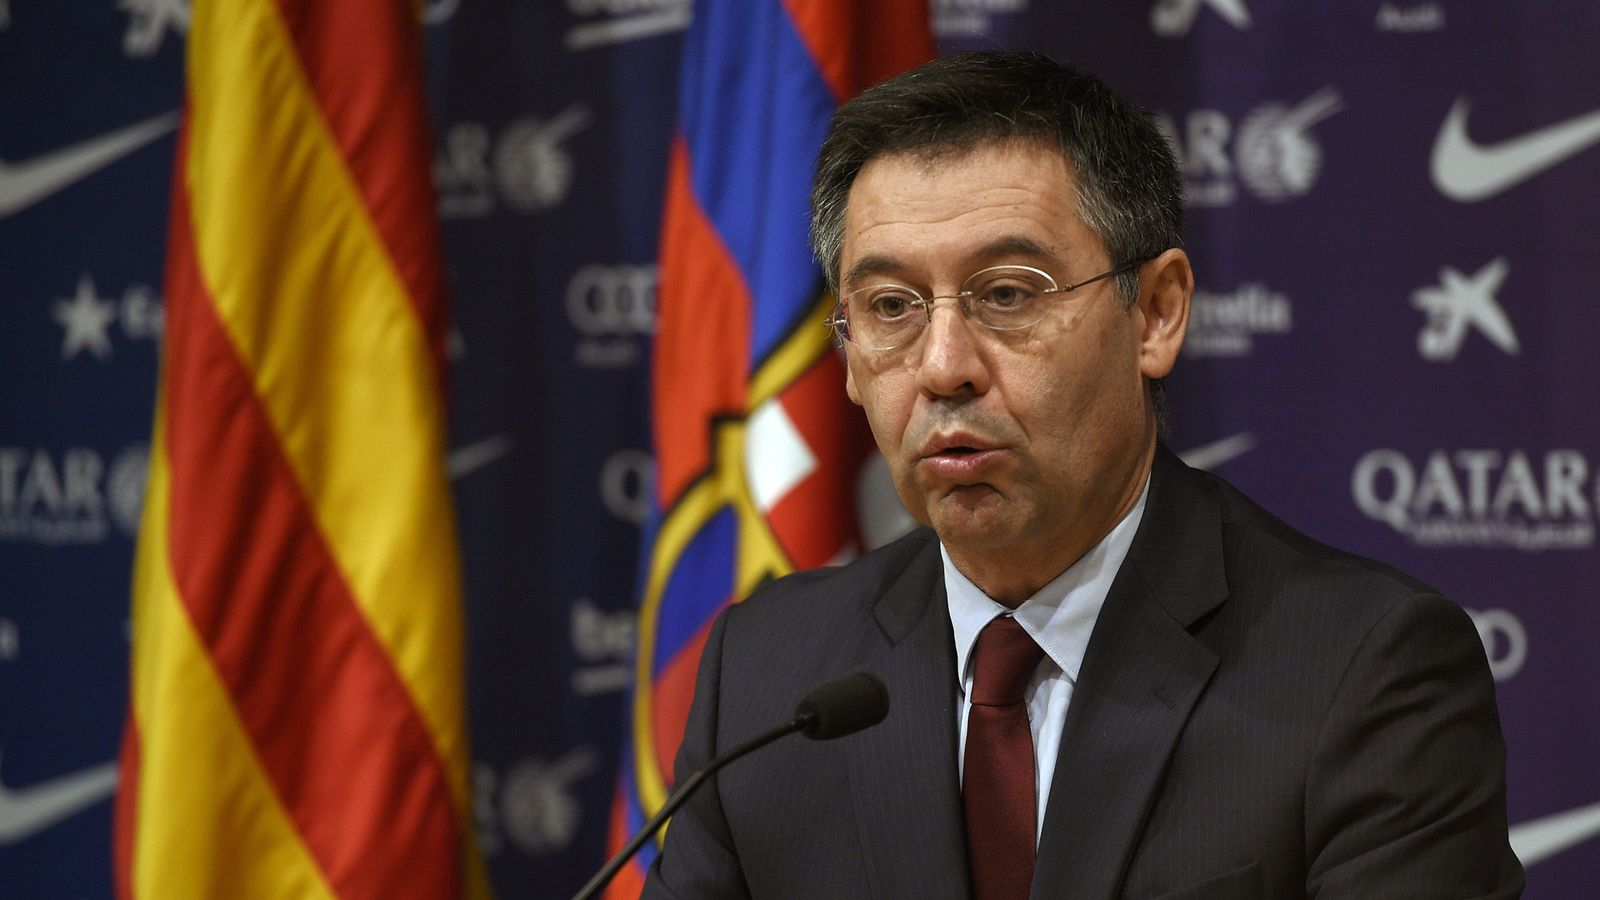 FC Barcelona in crisis, Bartomeu Departure Could Affect the Future of Messi